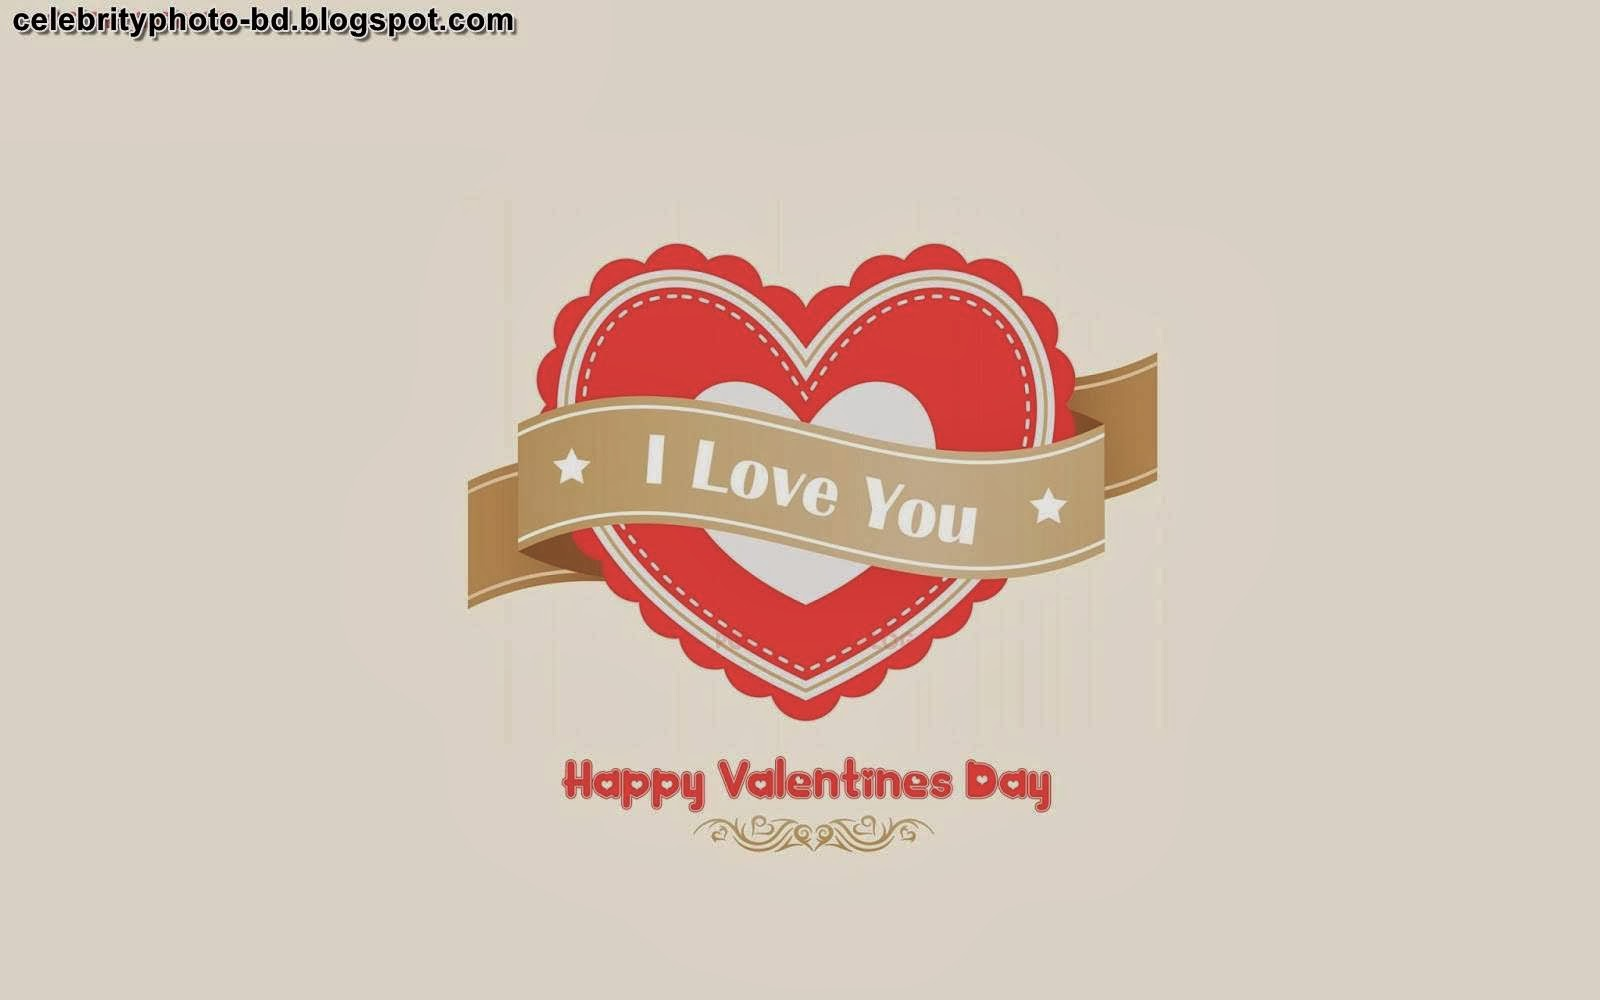 Valentines+Day+Latest+Lovely+Hearts+HD+Wallpapers+and+Wishes+Image+Cards+2014005